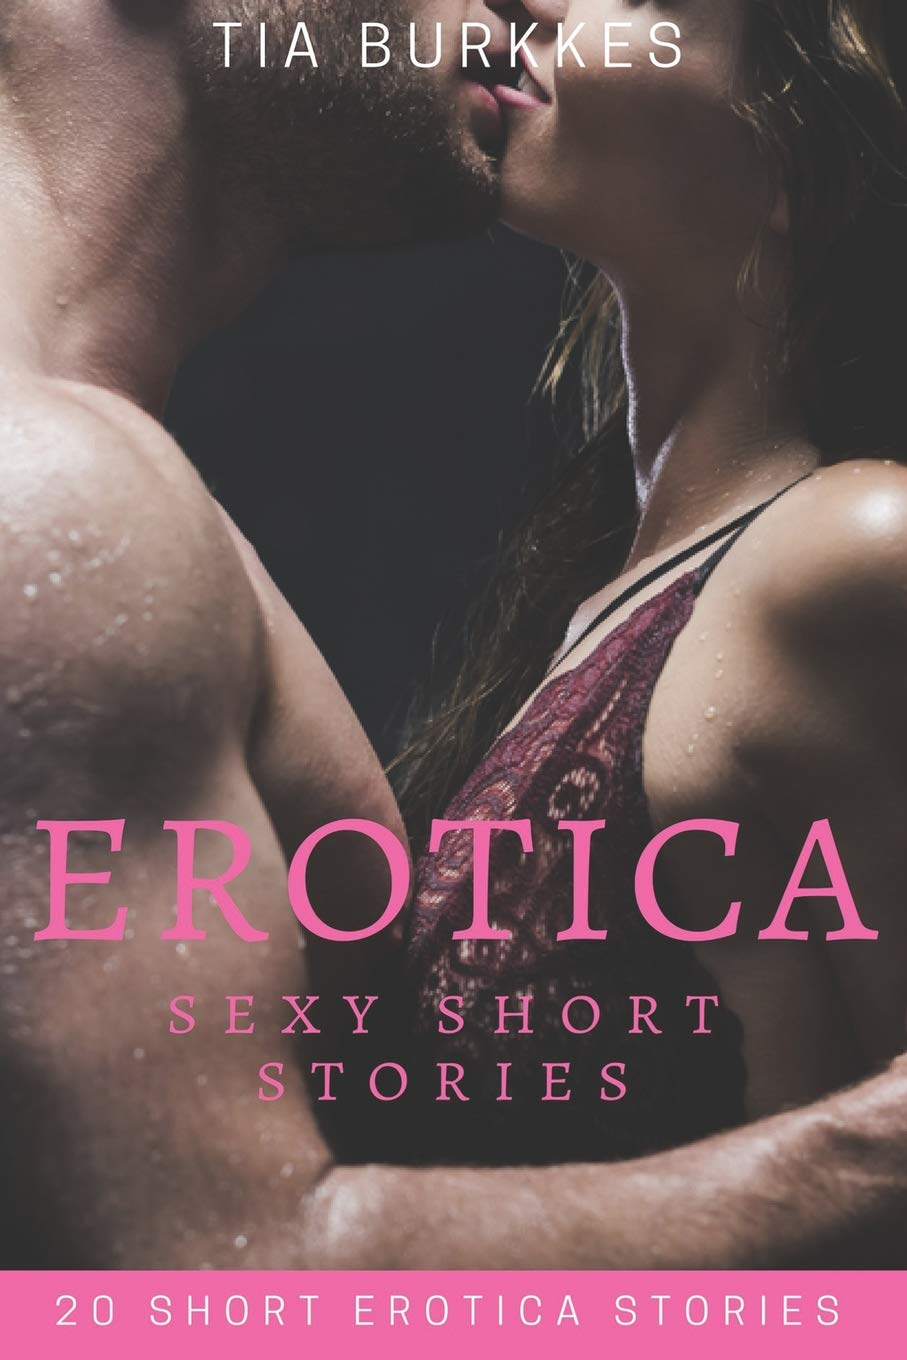 Erotica: Sexy Short Stories: 20 Short Erotica Stories Paperback – February  19, 2019